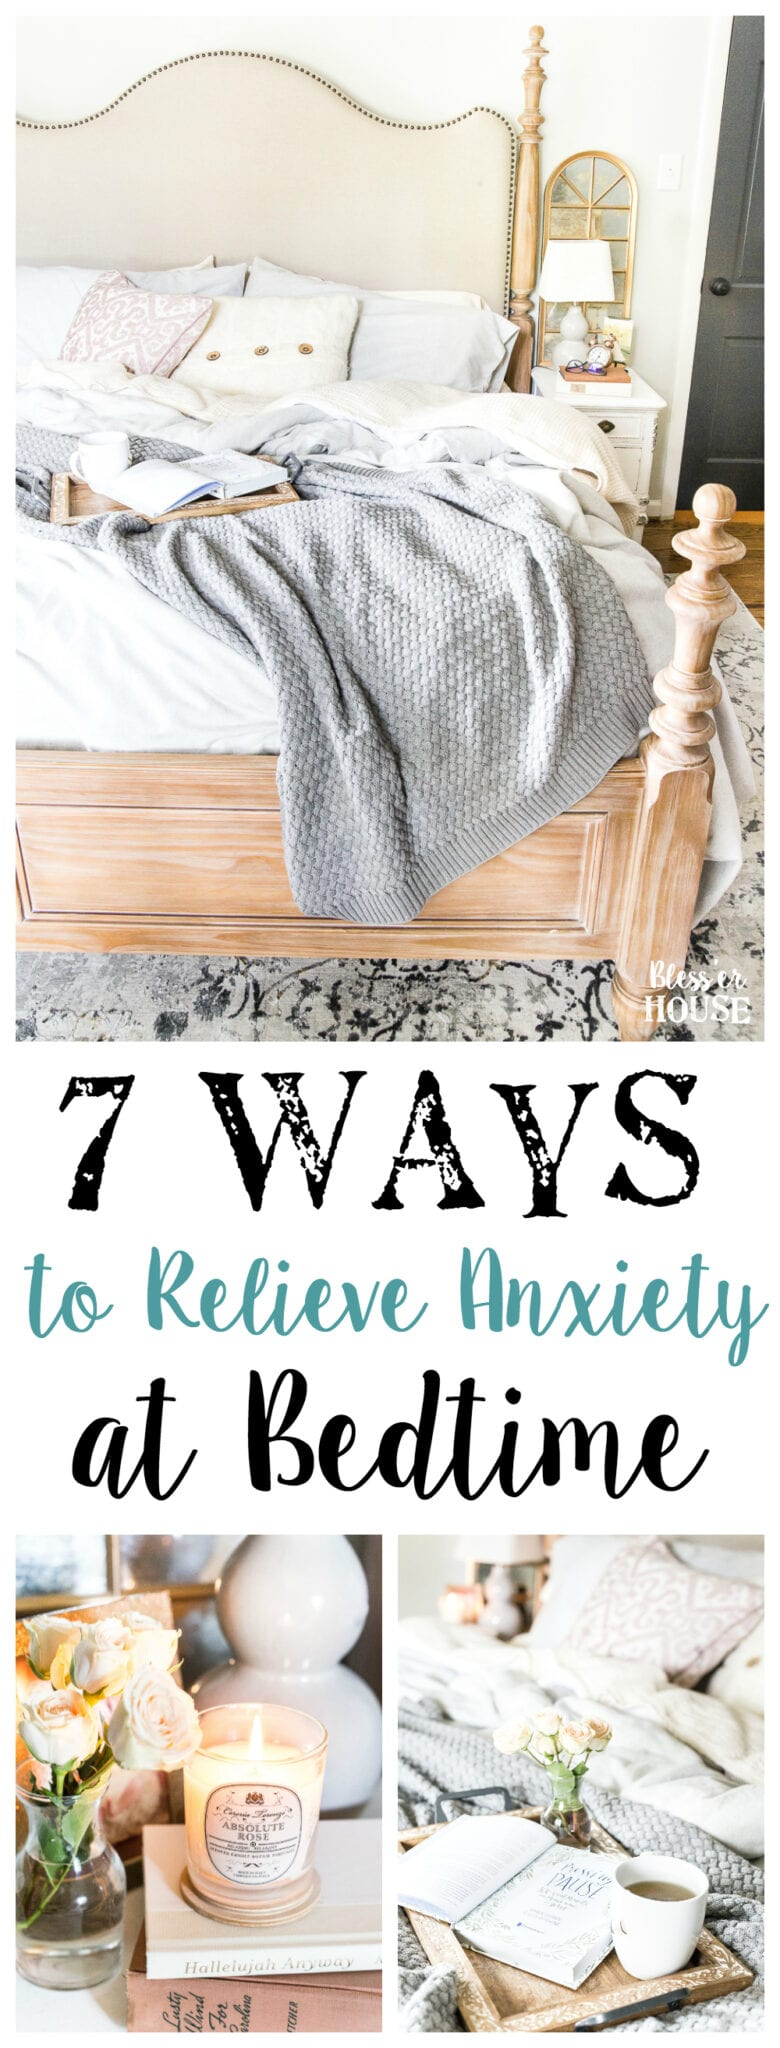 7 Ways I Relieve Anxiety at Bedtime | blesserhouse.com - Tips for relieving stress and anxiety with bedtime rituals, decorating advice, and favorite products that work to help you unwind each day. #cozyliving #bedroom #anxiety #stressrelief #lifestyle